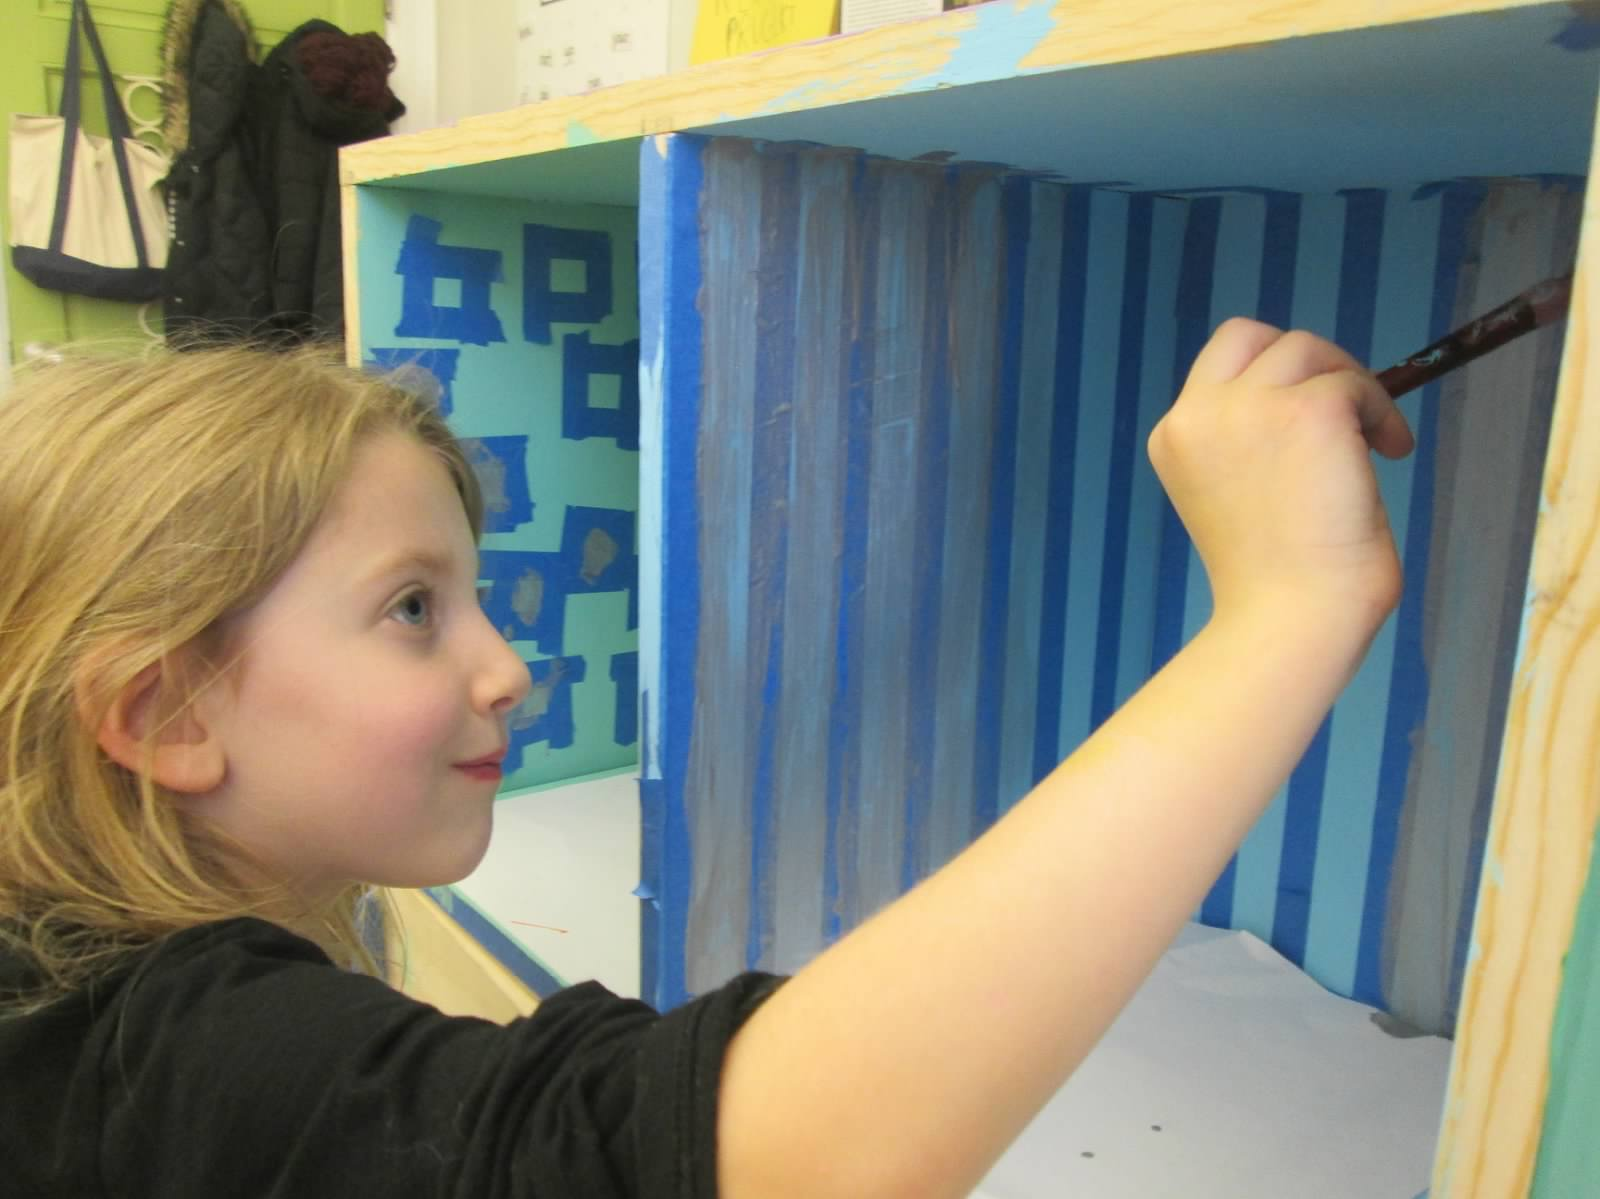 A student paints one of the new library bookshelves with colors decided by a class vote.